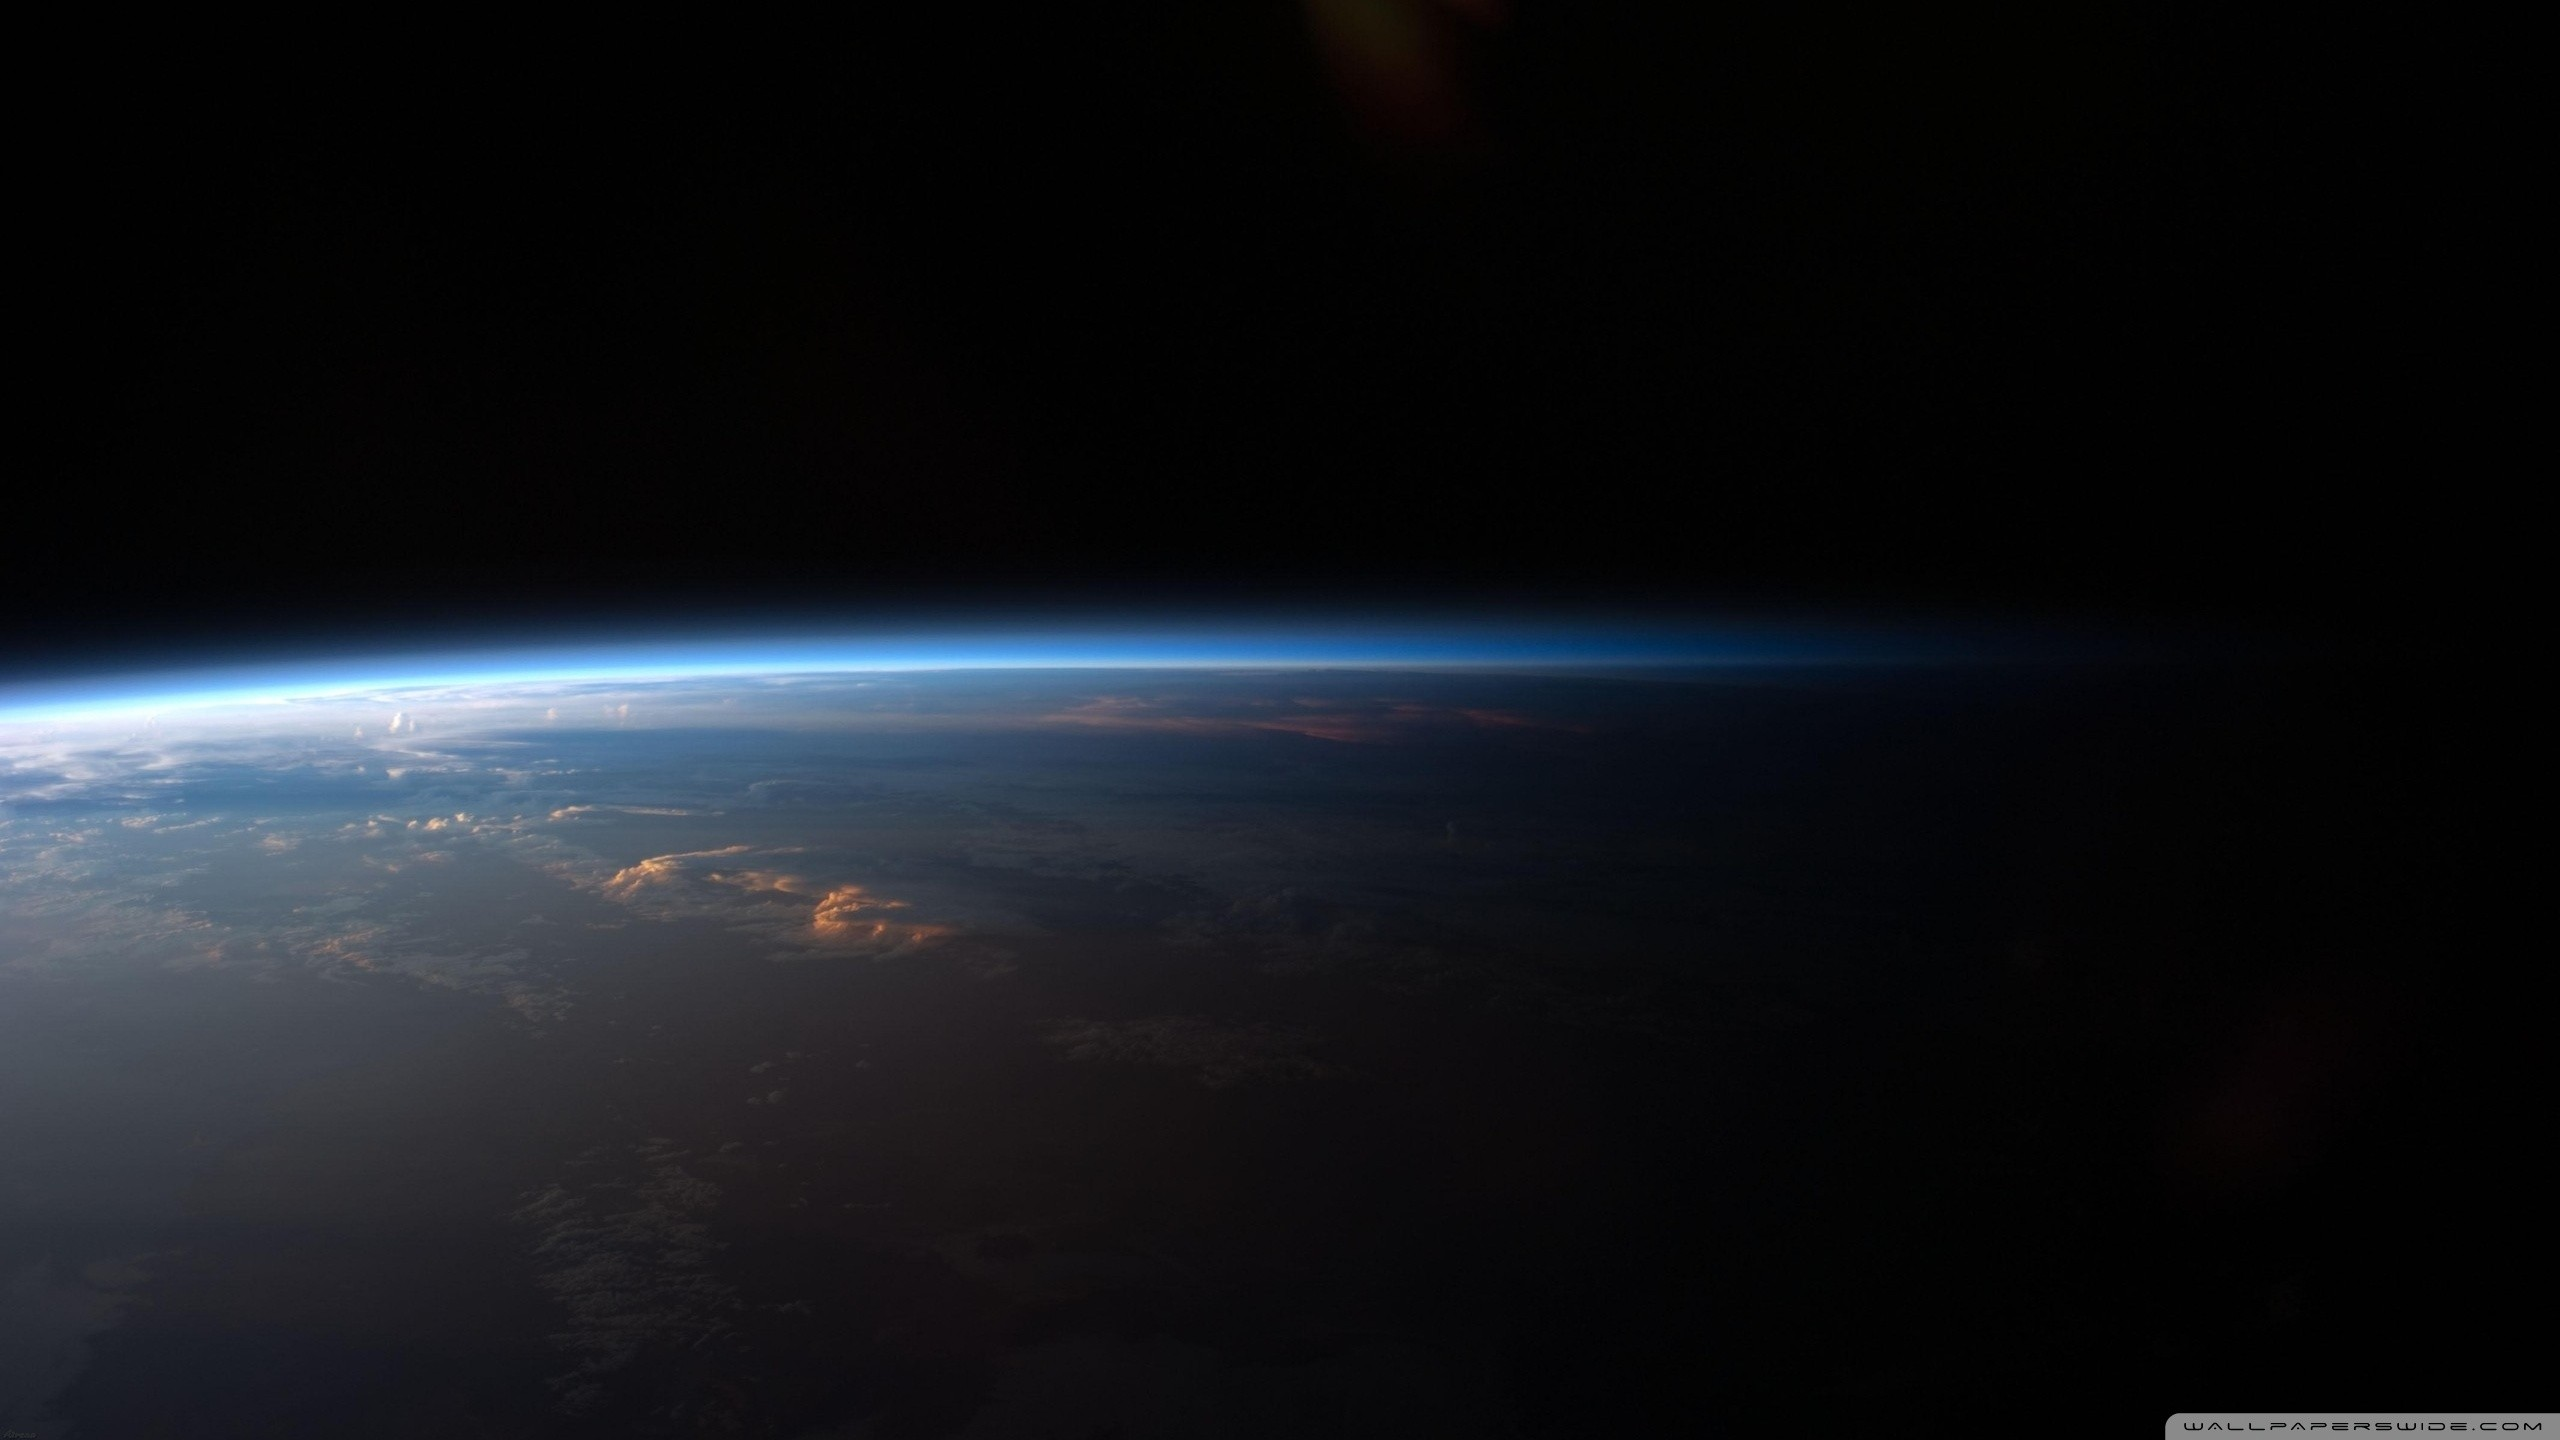 2560x1440 Earth Day And Night From Space HD desktop wallpaper : High .